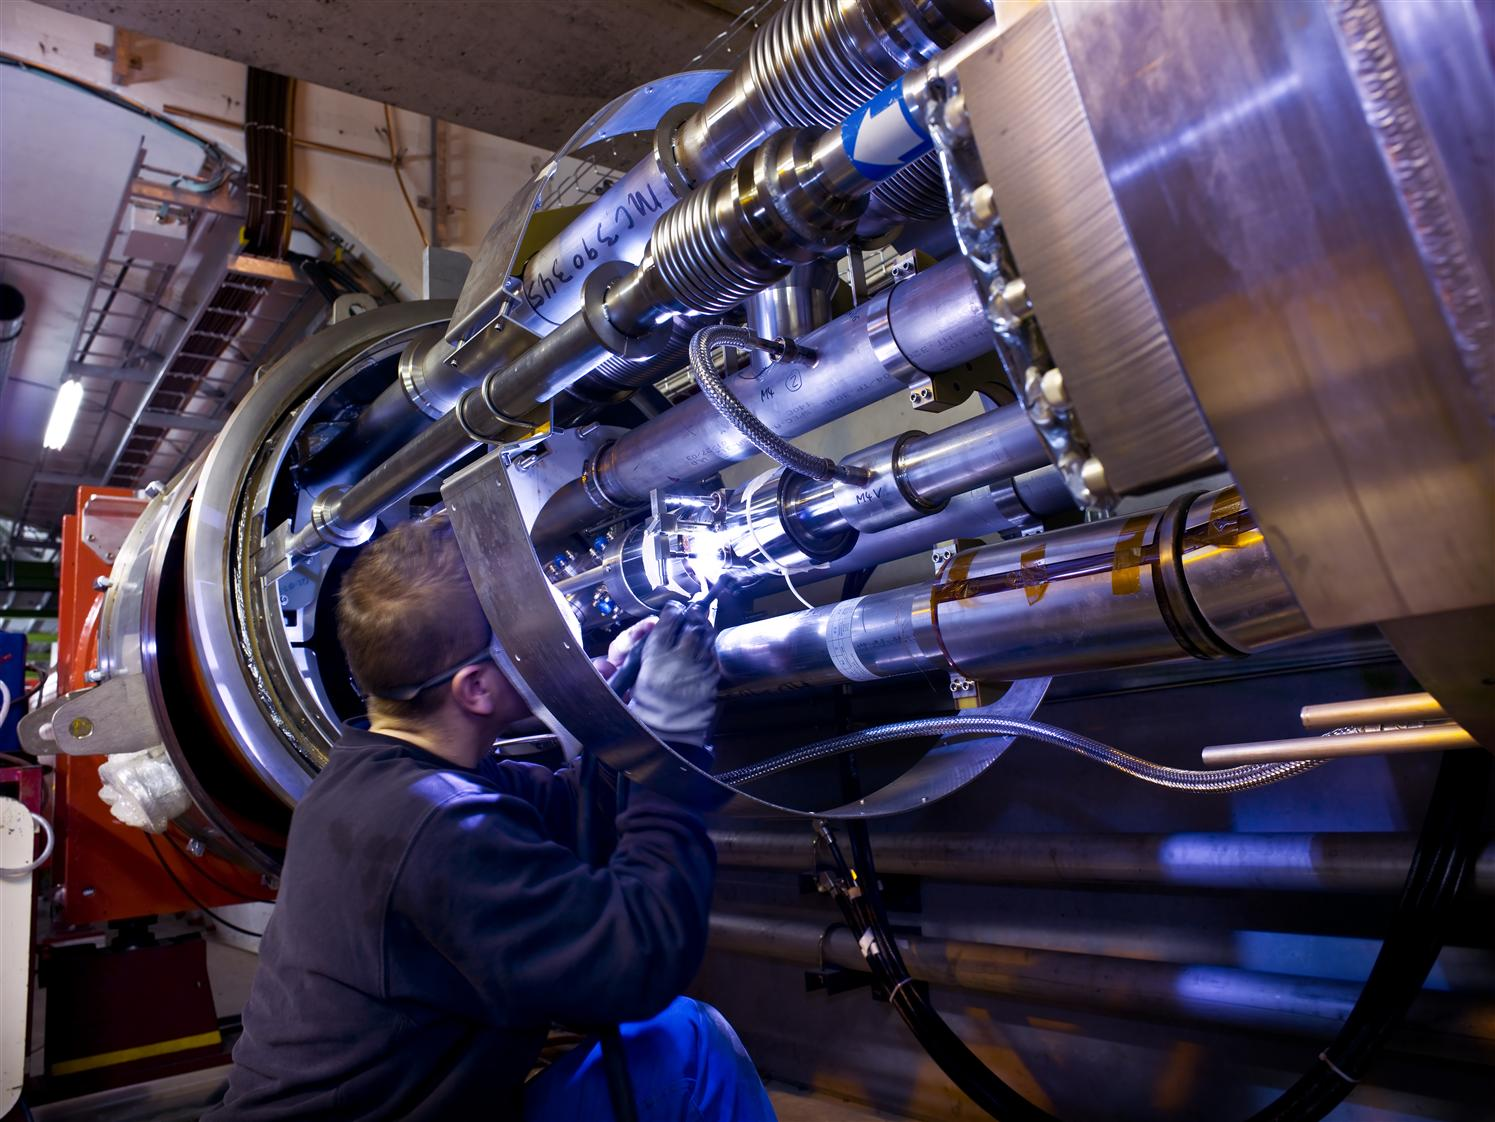 Welding of interconnections of LHC magnets - sector 2-1 close from the ALICE experiment.